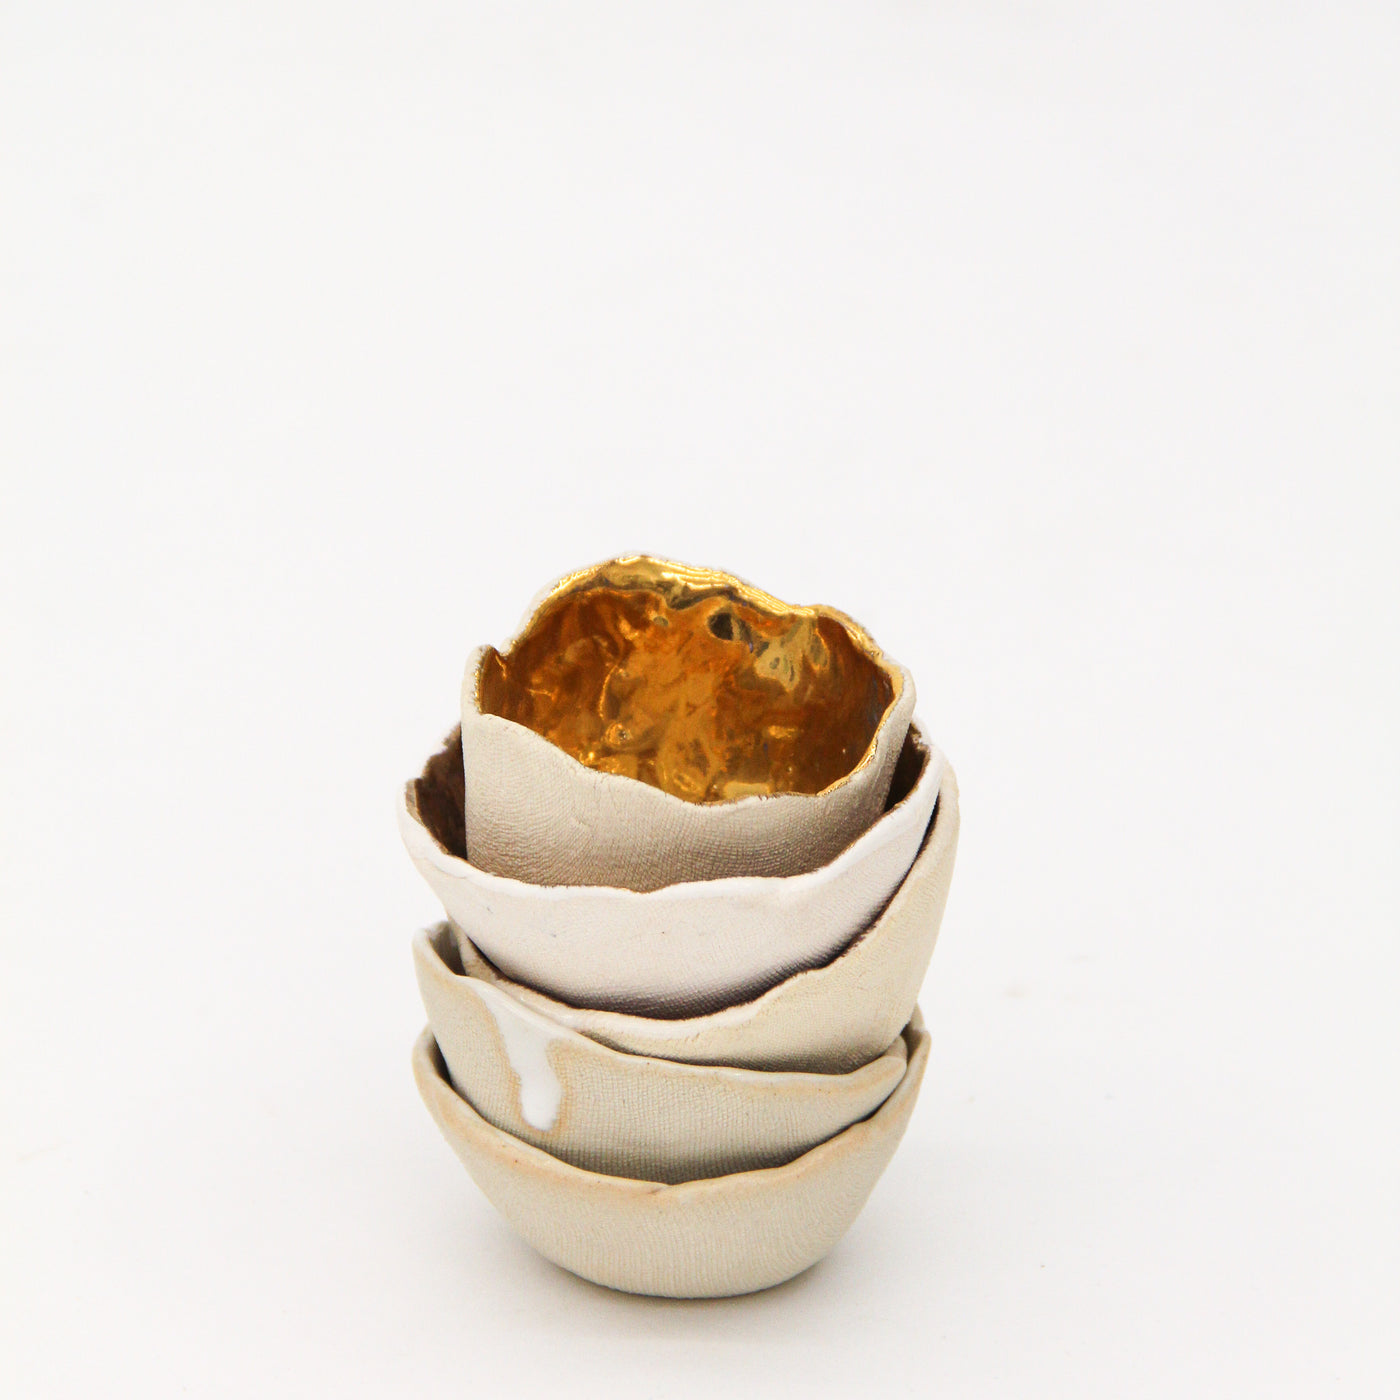 14k Gold Pinch Pot